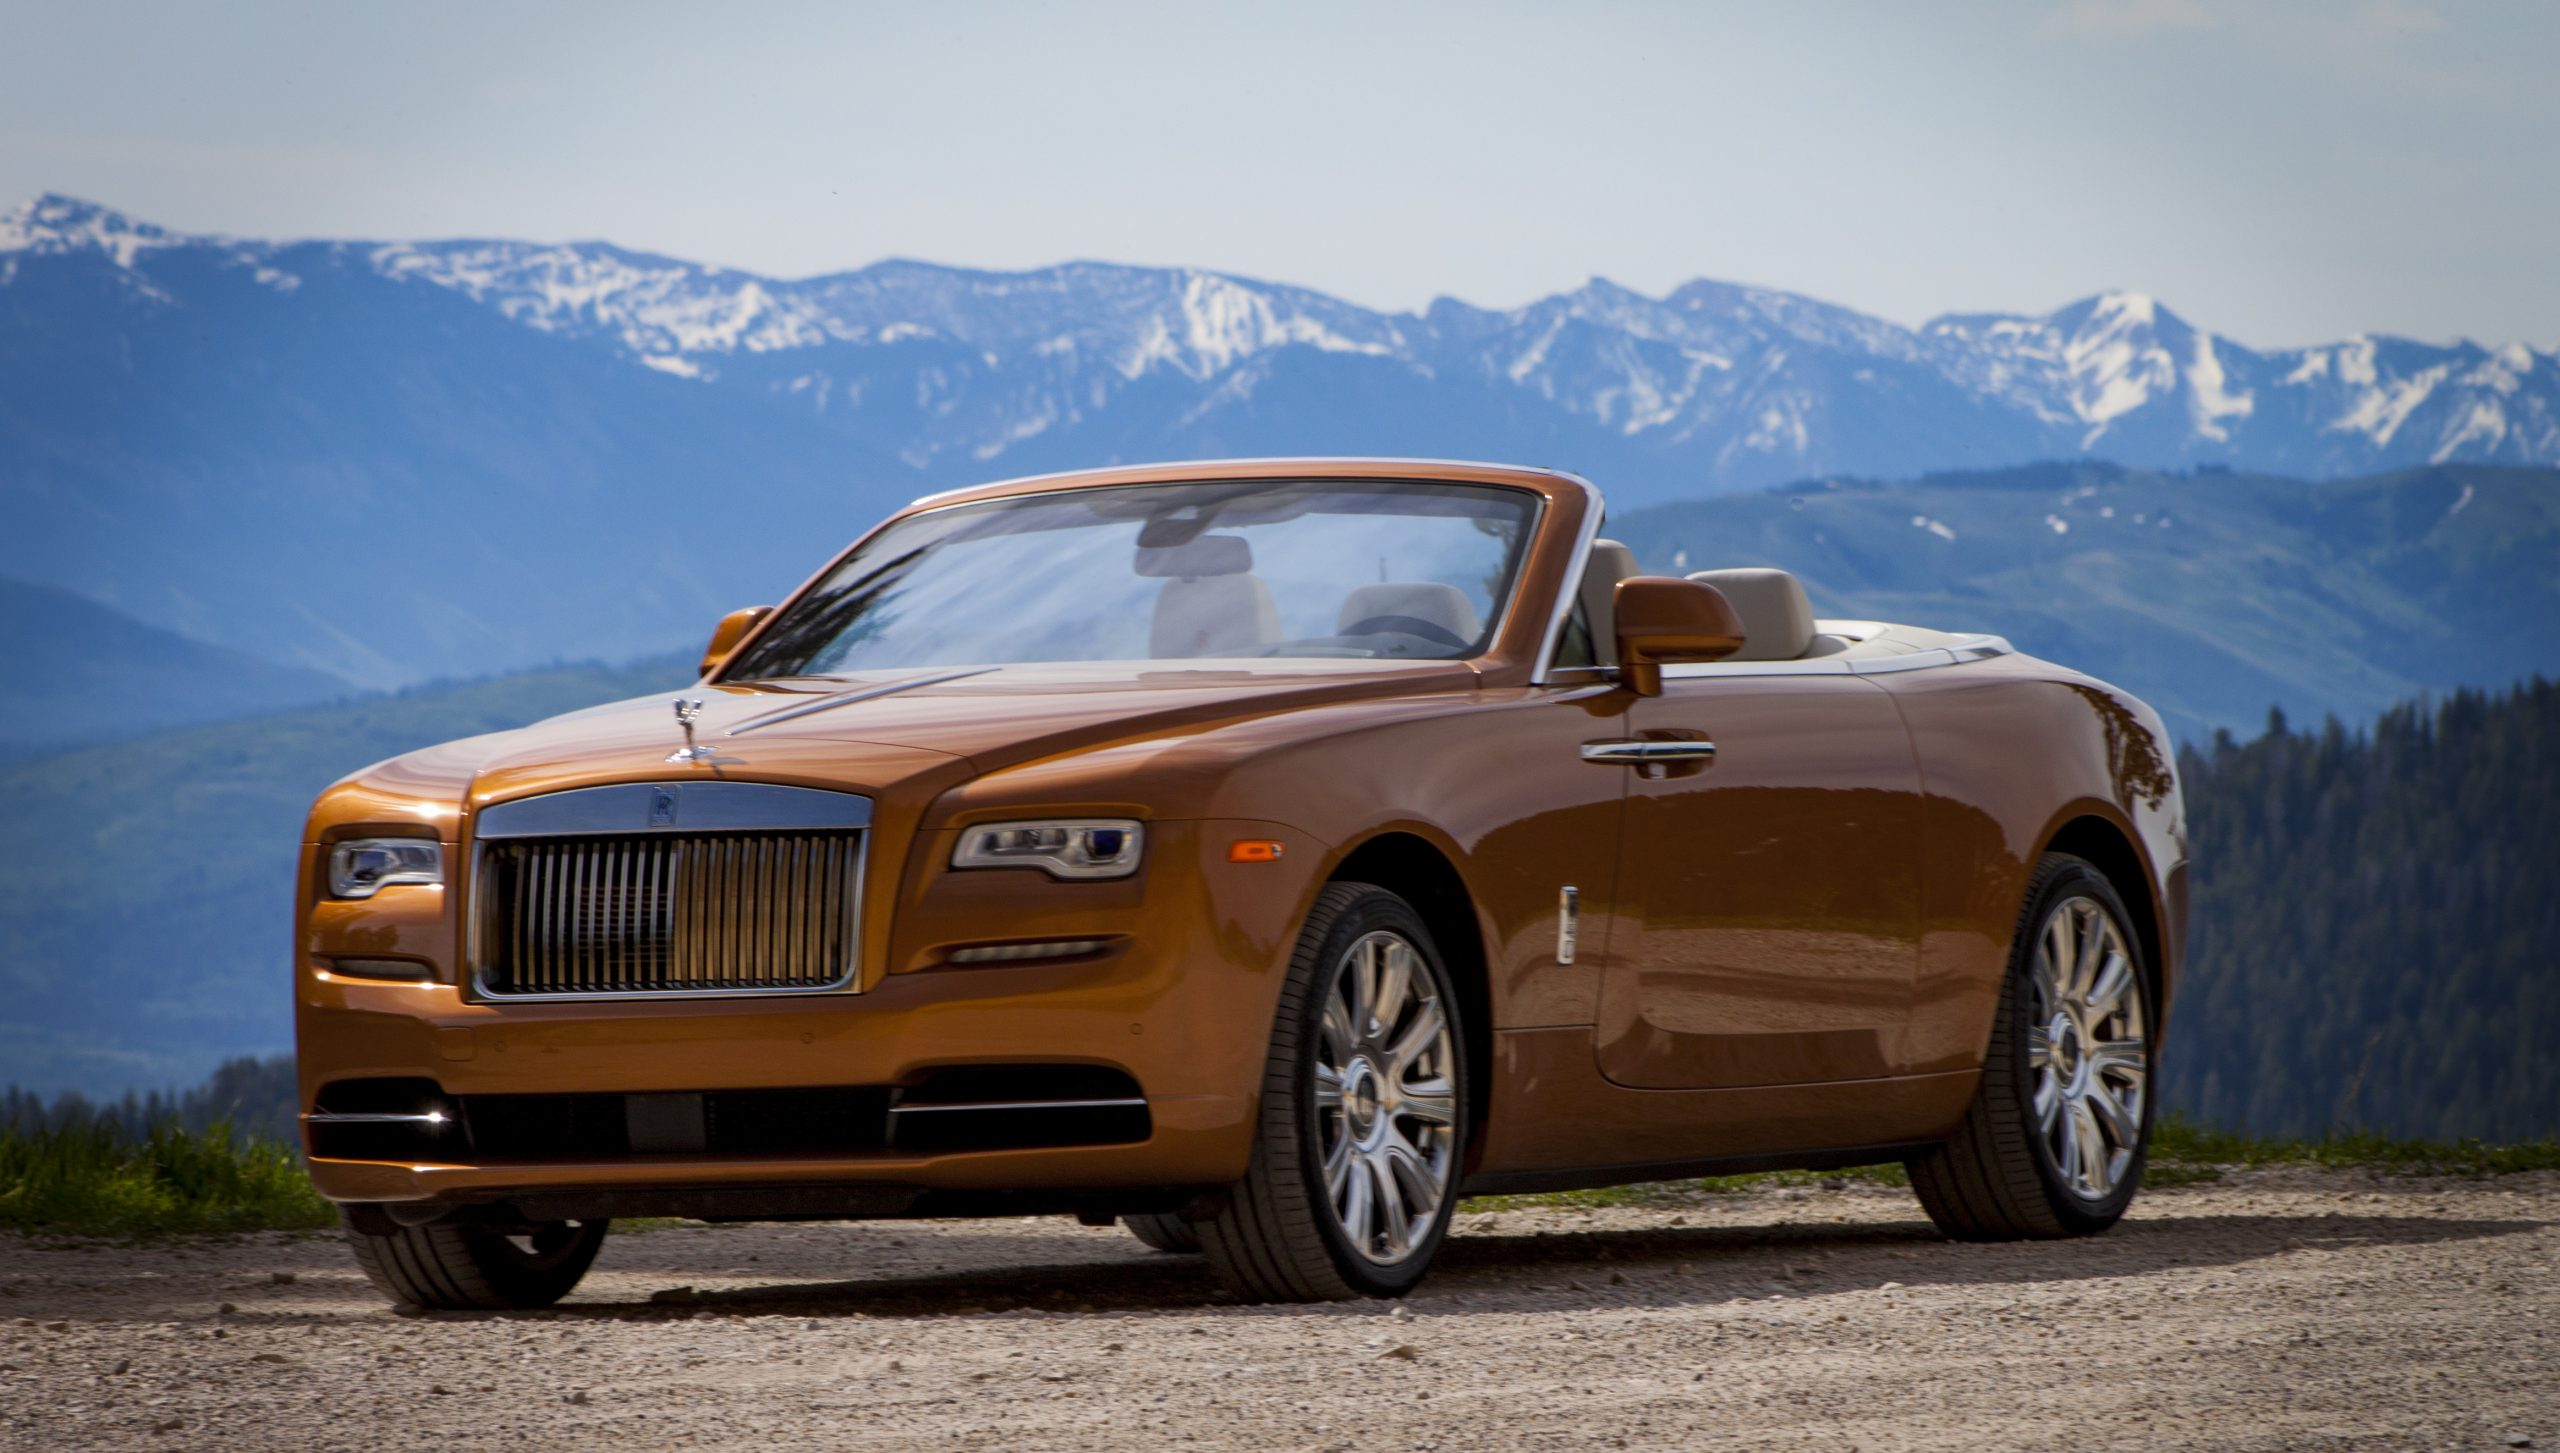 Driving The Rolls-Royce Dawn In Cowboy Country - Pursuitist